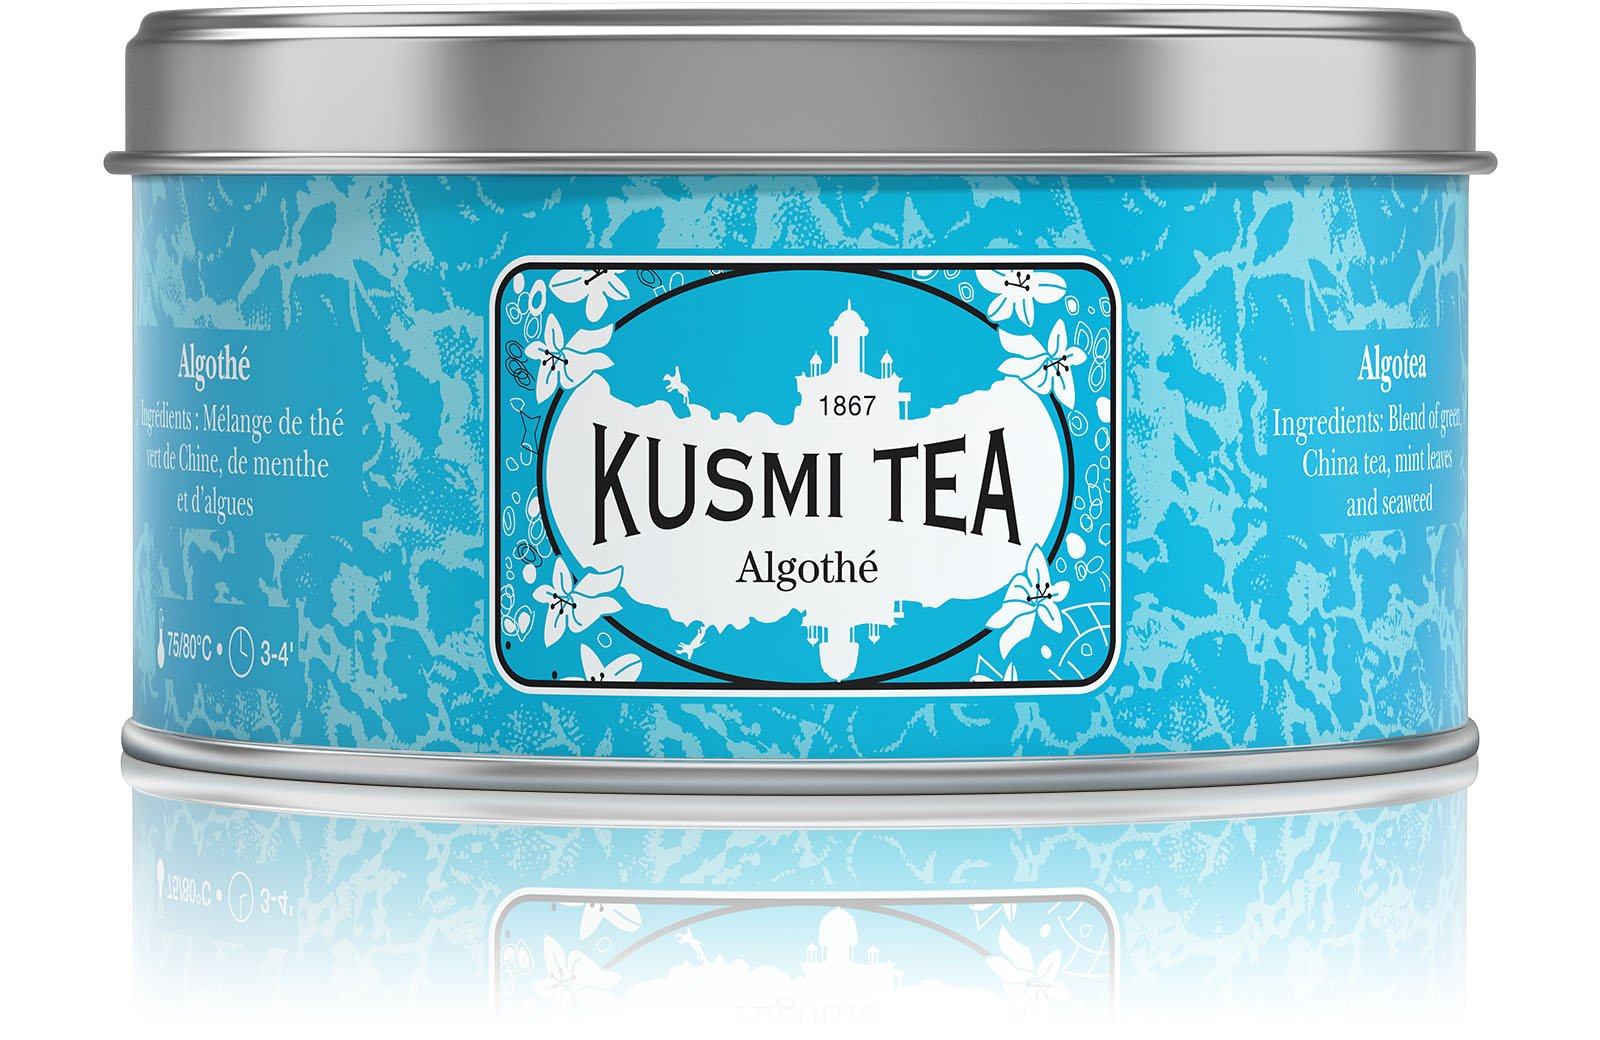 Kusmi Tea Algotea Seaweed and Mint-Flavored Green Tea - Mint Essential Oils, Sea Lettuce, Nori, and Dulse Perfect for Refreshing Iced (4.4oz Tin 50 Servings)